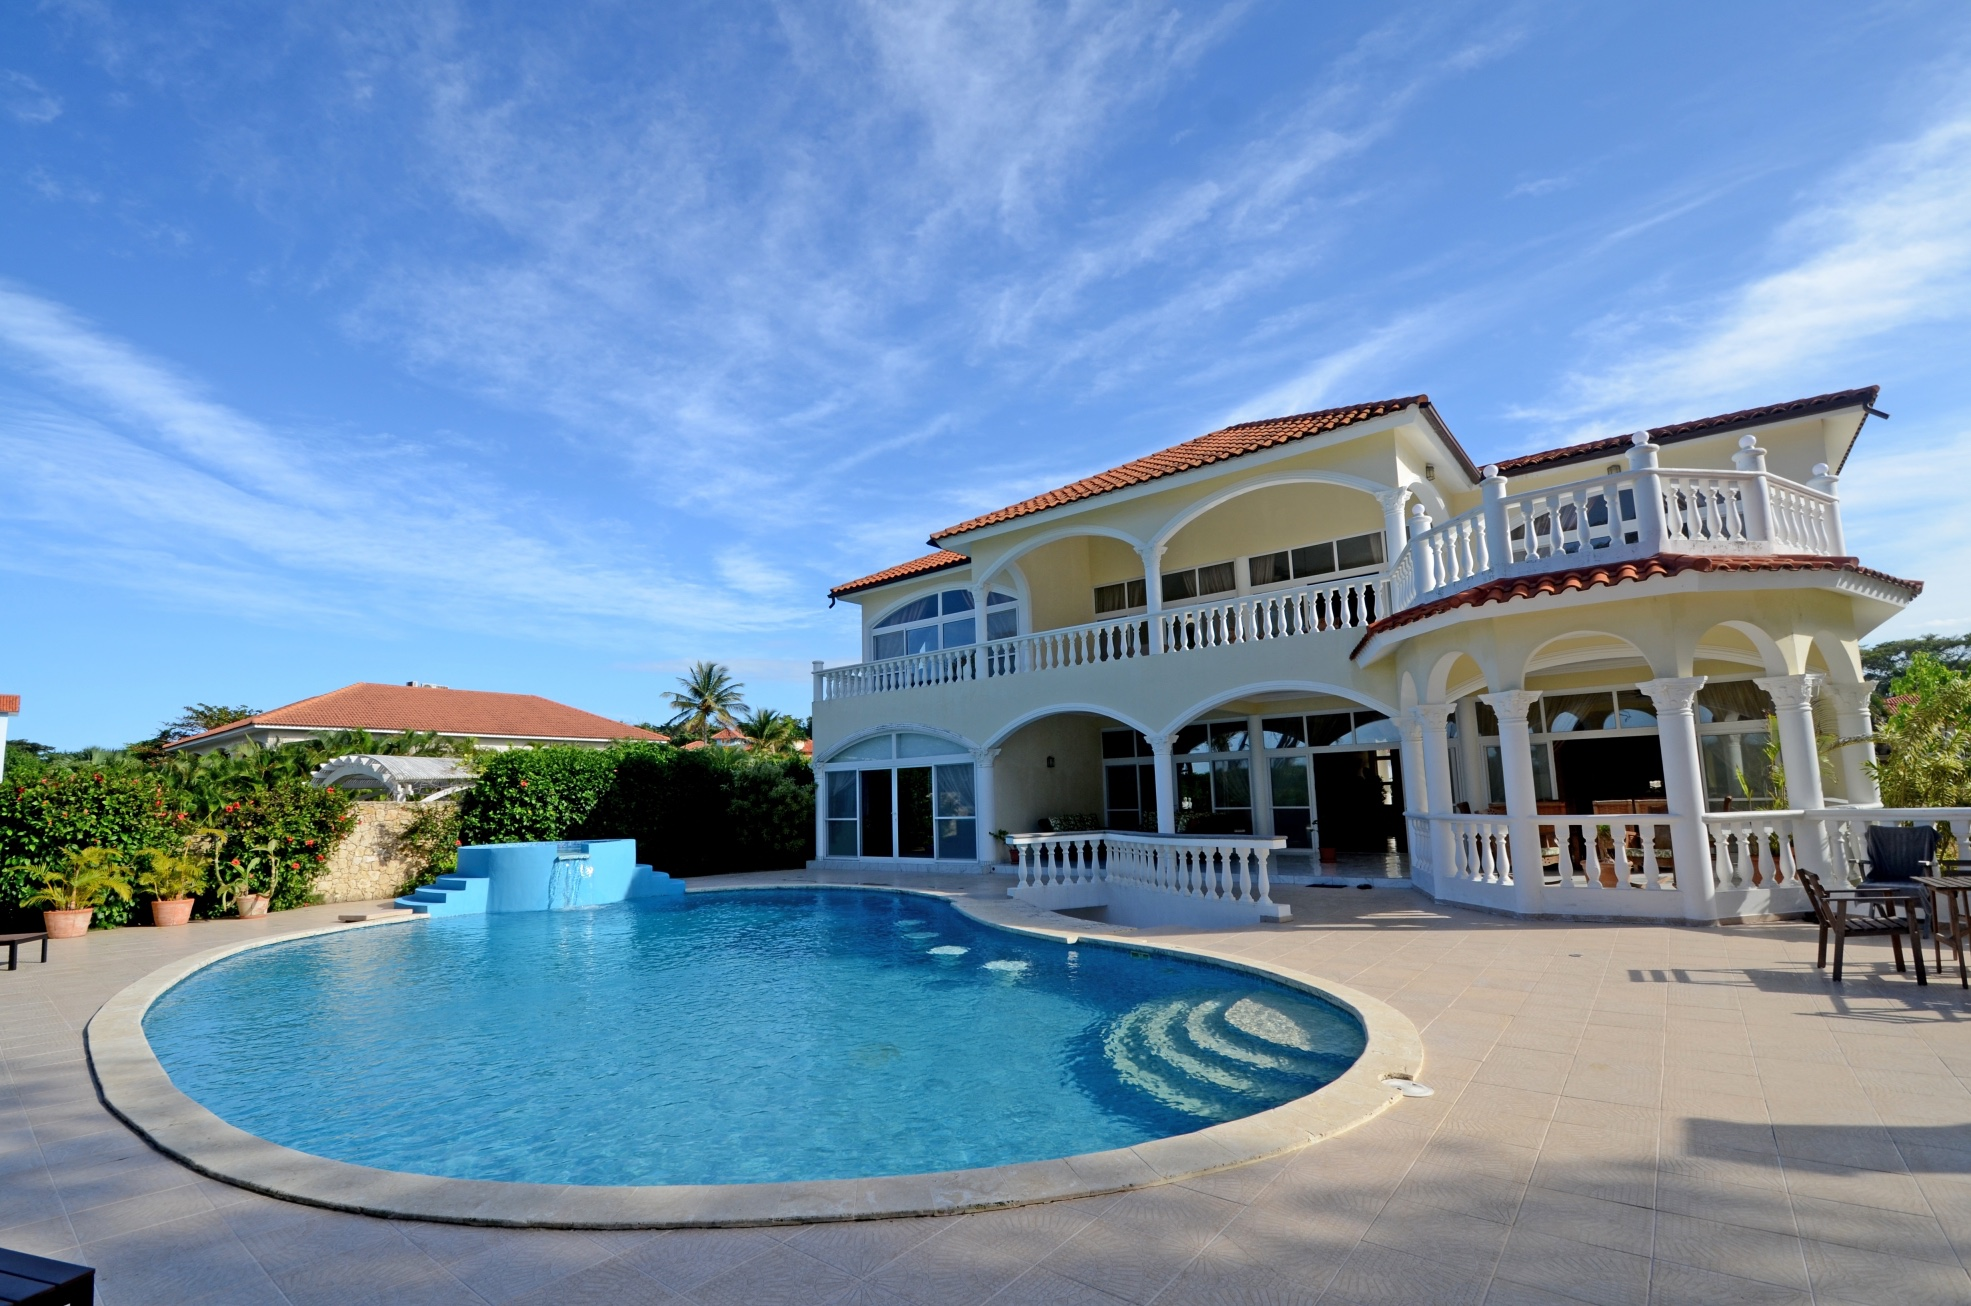 8-12 rooms Bachelor Party Beach Villa Rental in Sosua